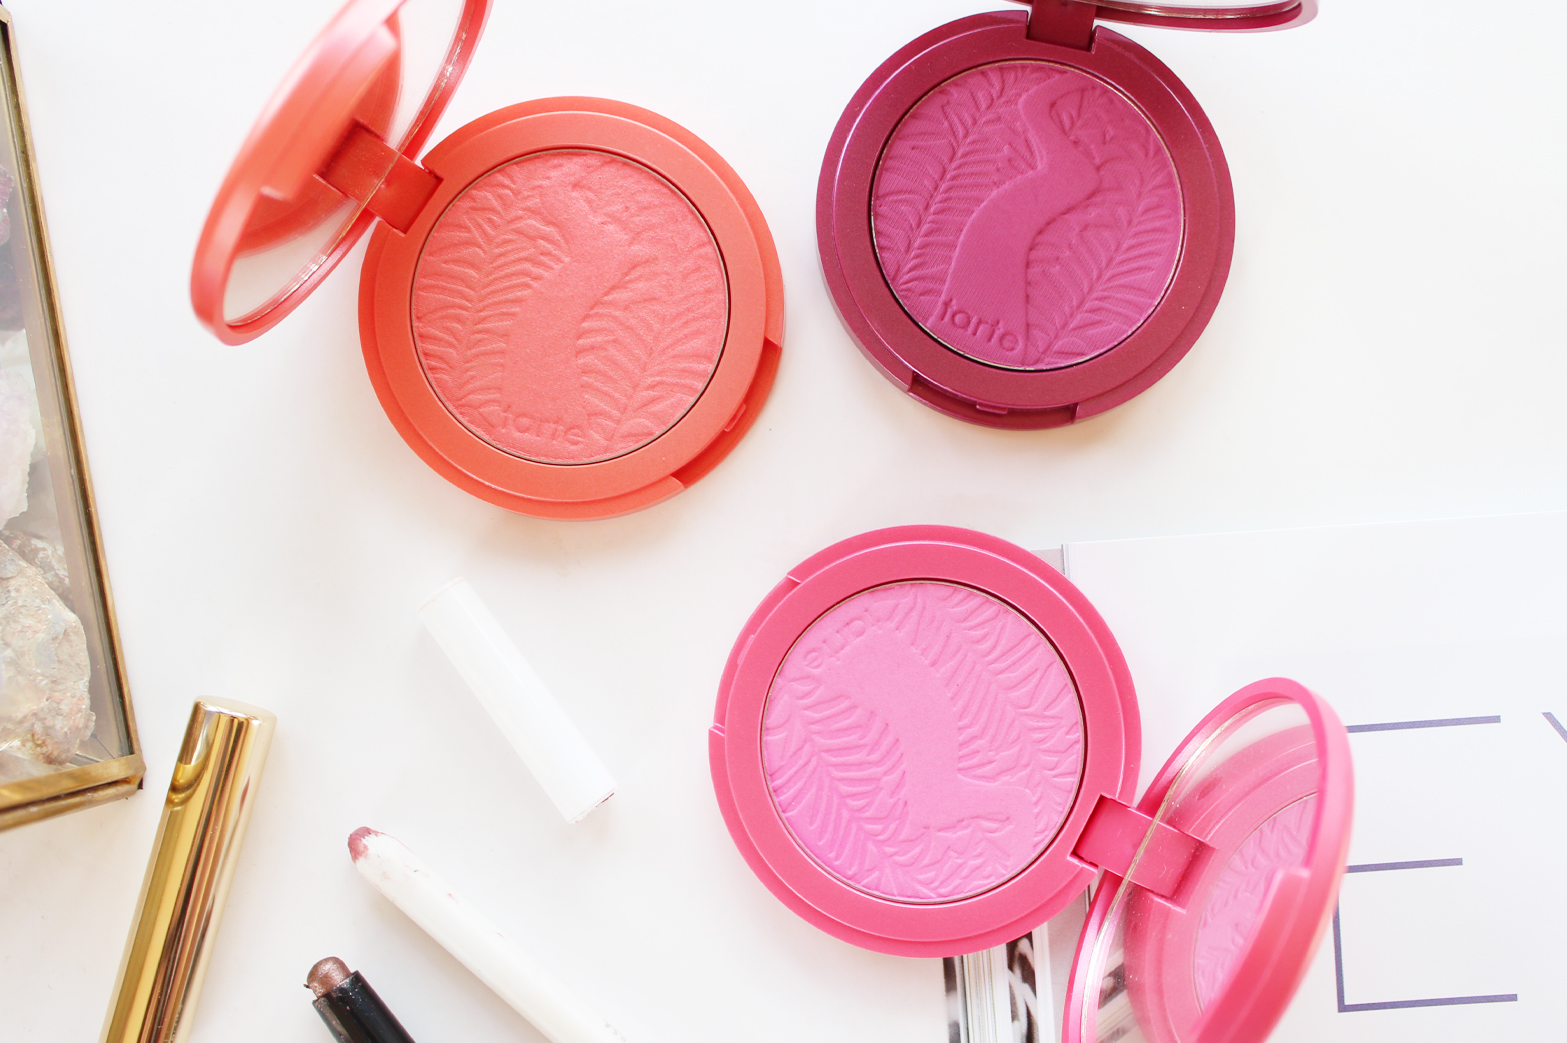 MOST LOVED | April '15 - Tarte Amazonian Clay 12-hour Blushes - CassandraMyee